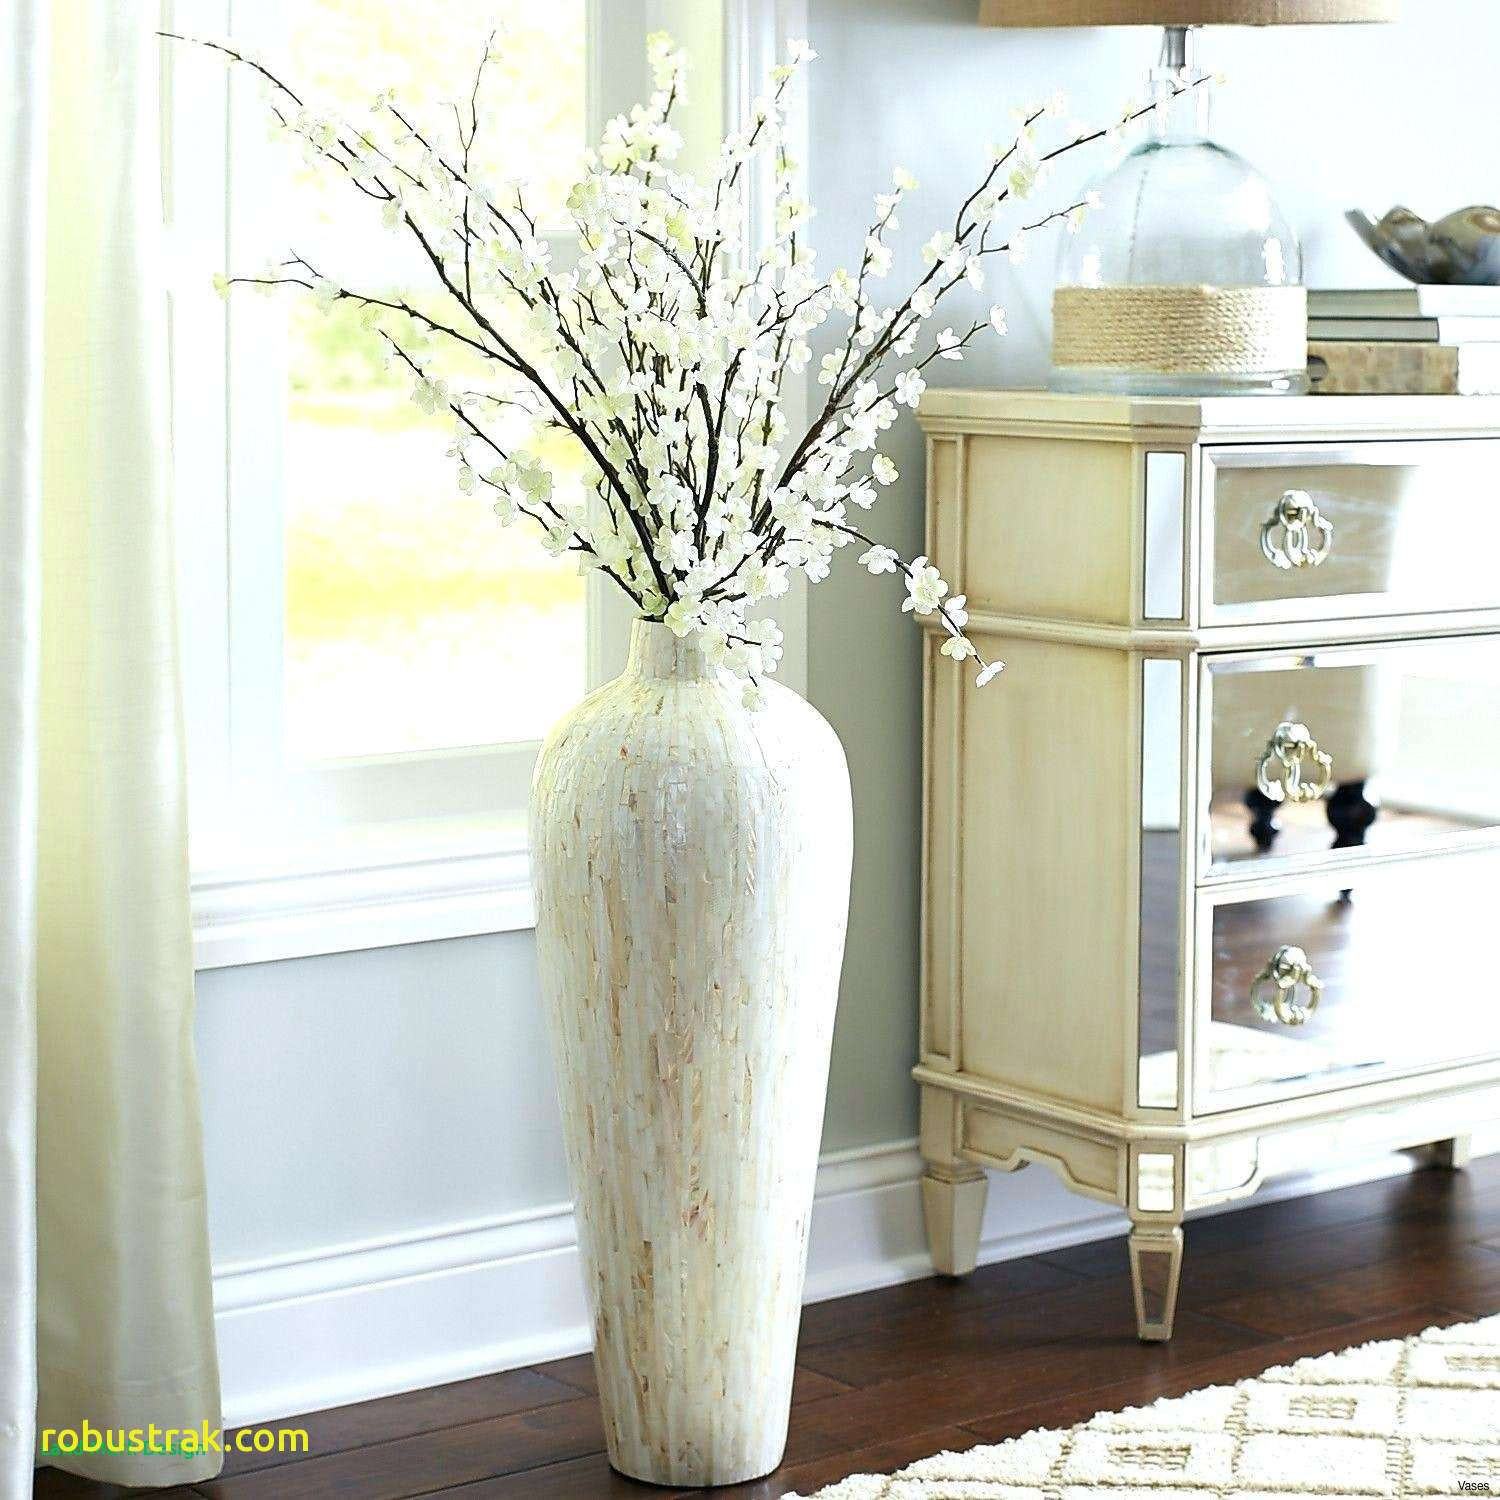 large floor vase with bamboo sticks of 20 elegant large floor vase decoration ideas bogekompresorturkiye com inside tall floor vaseh vases extra large vase vasei 0d tall vase with branches